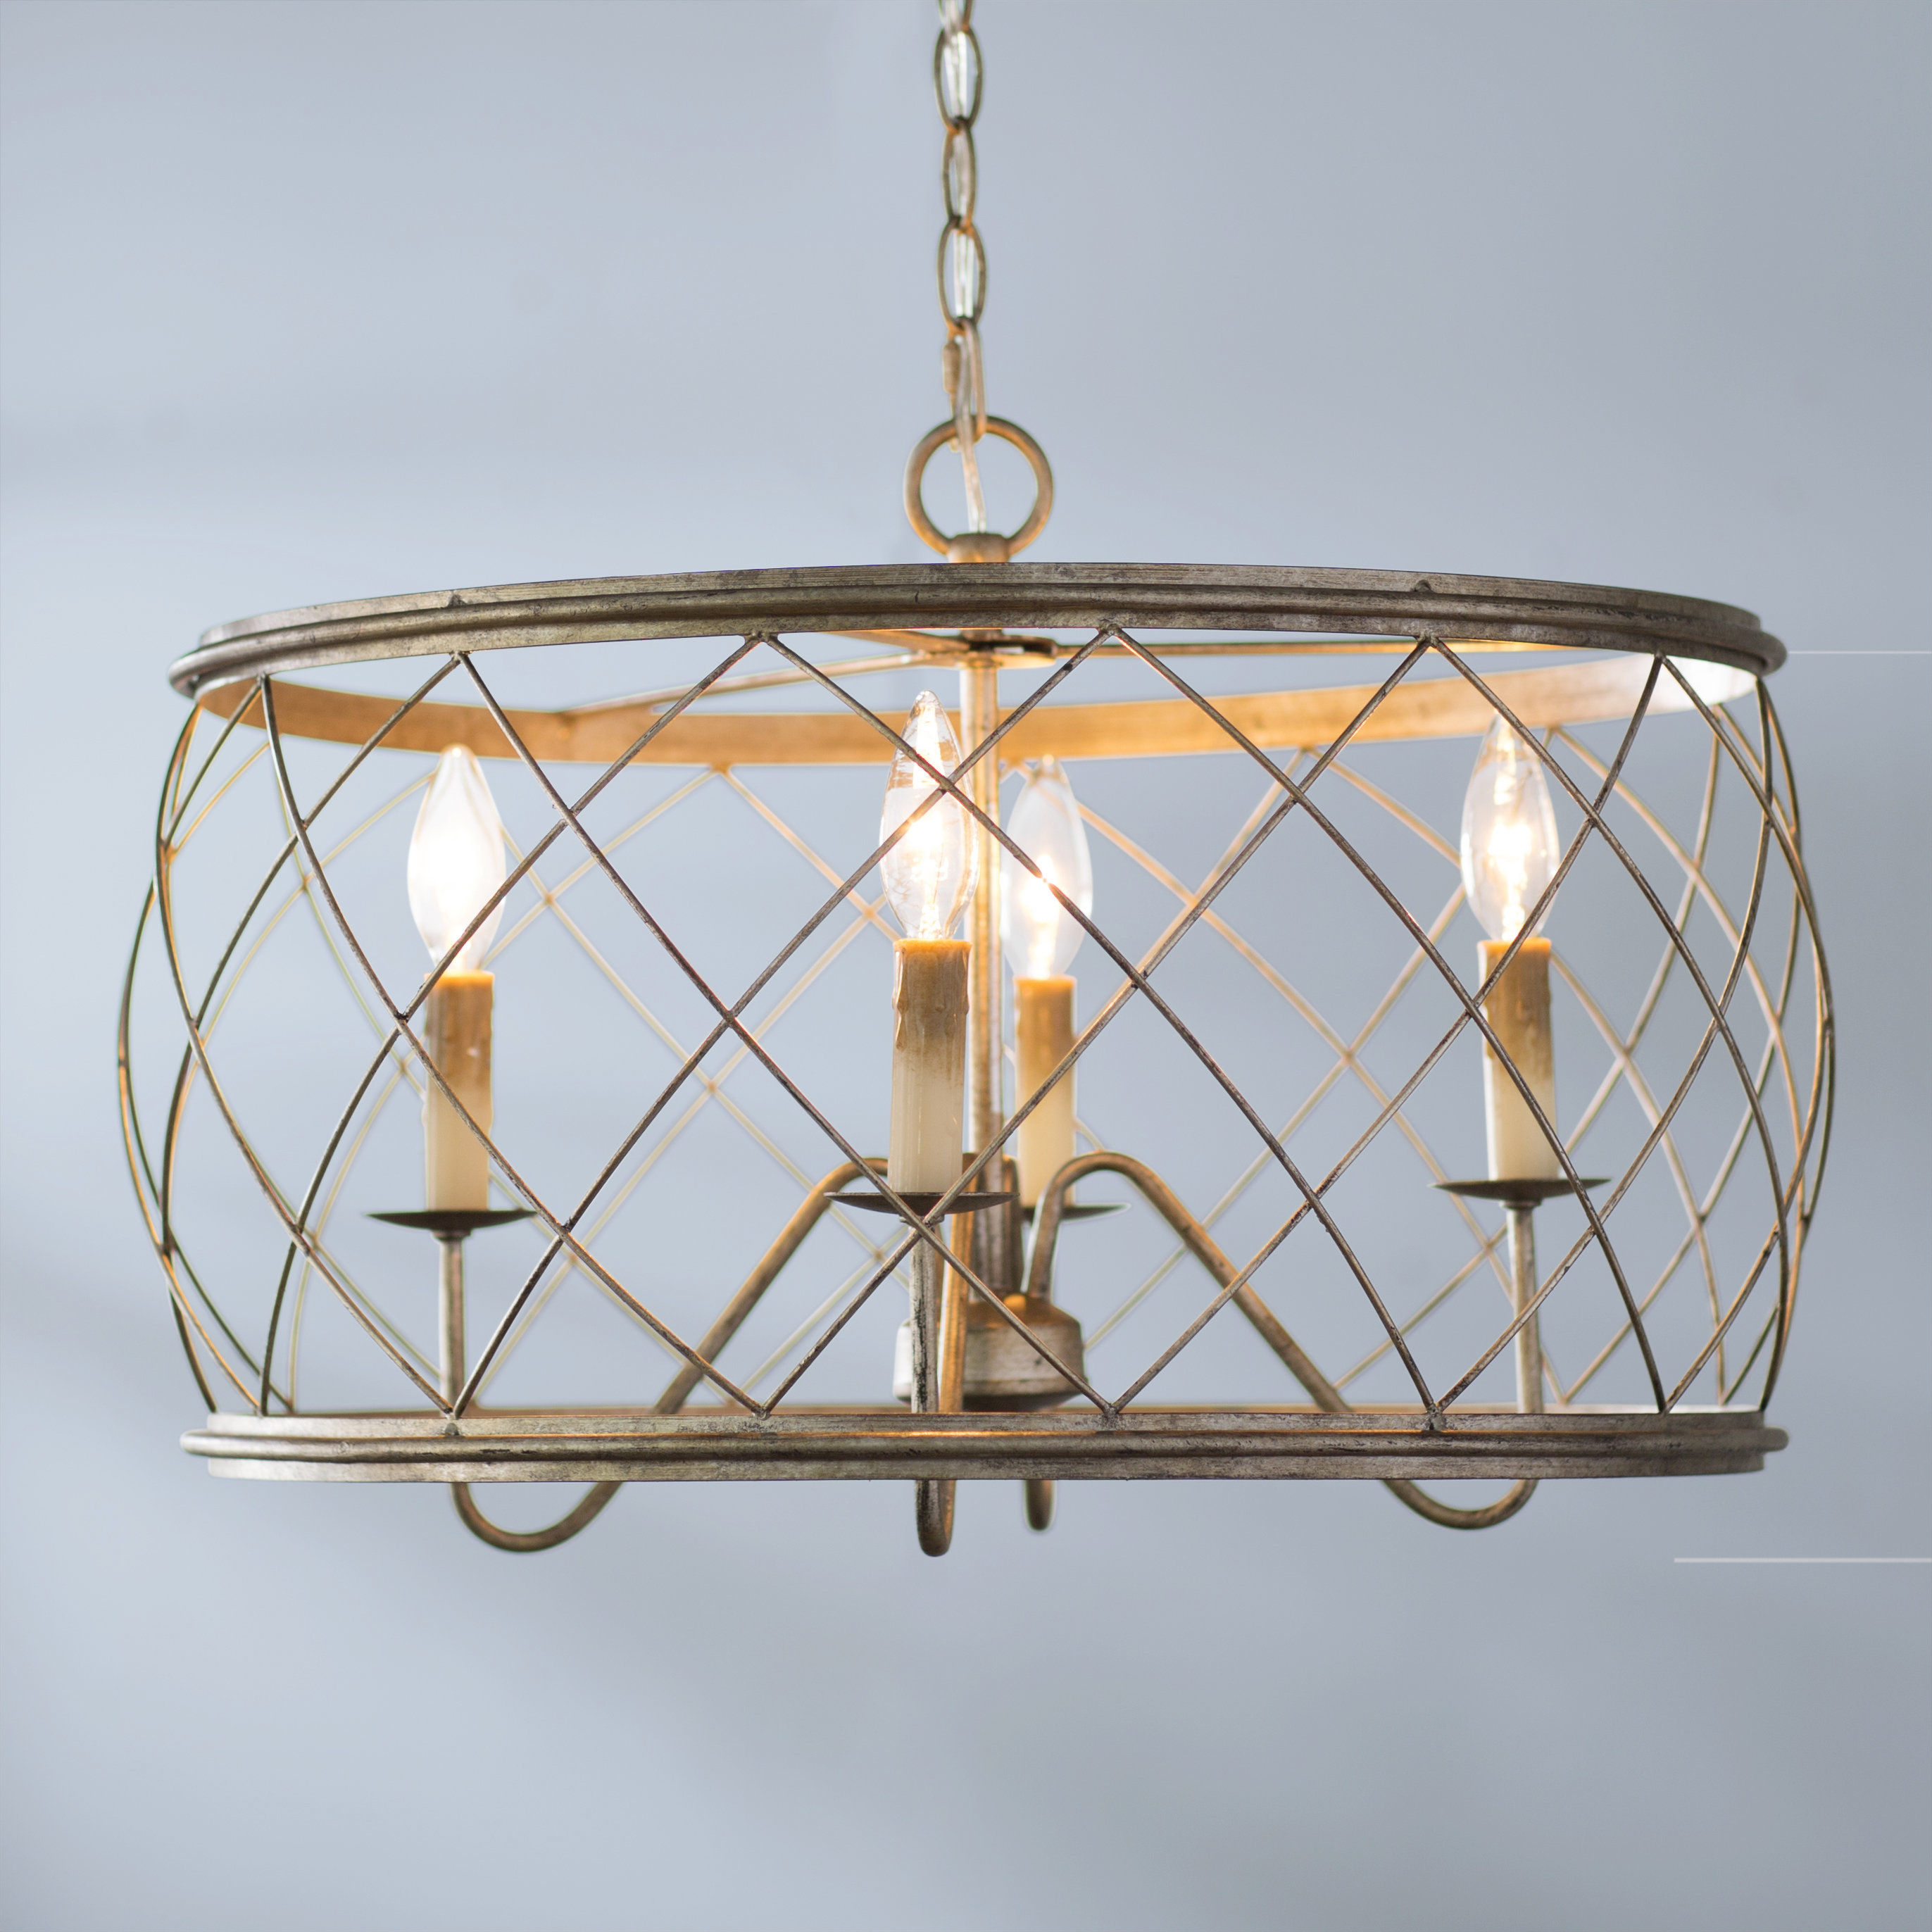 Statement Light Fixture (View 12 of 25)